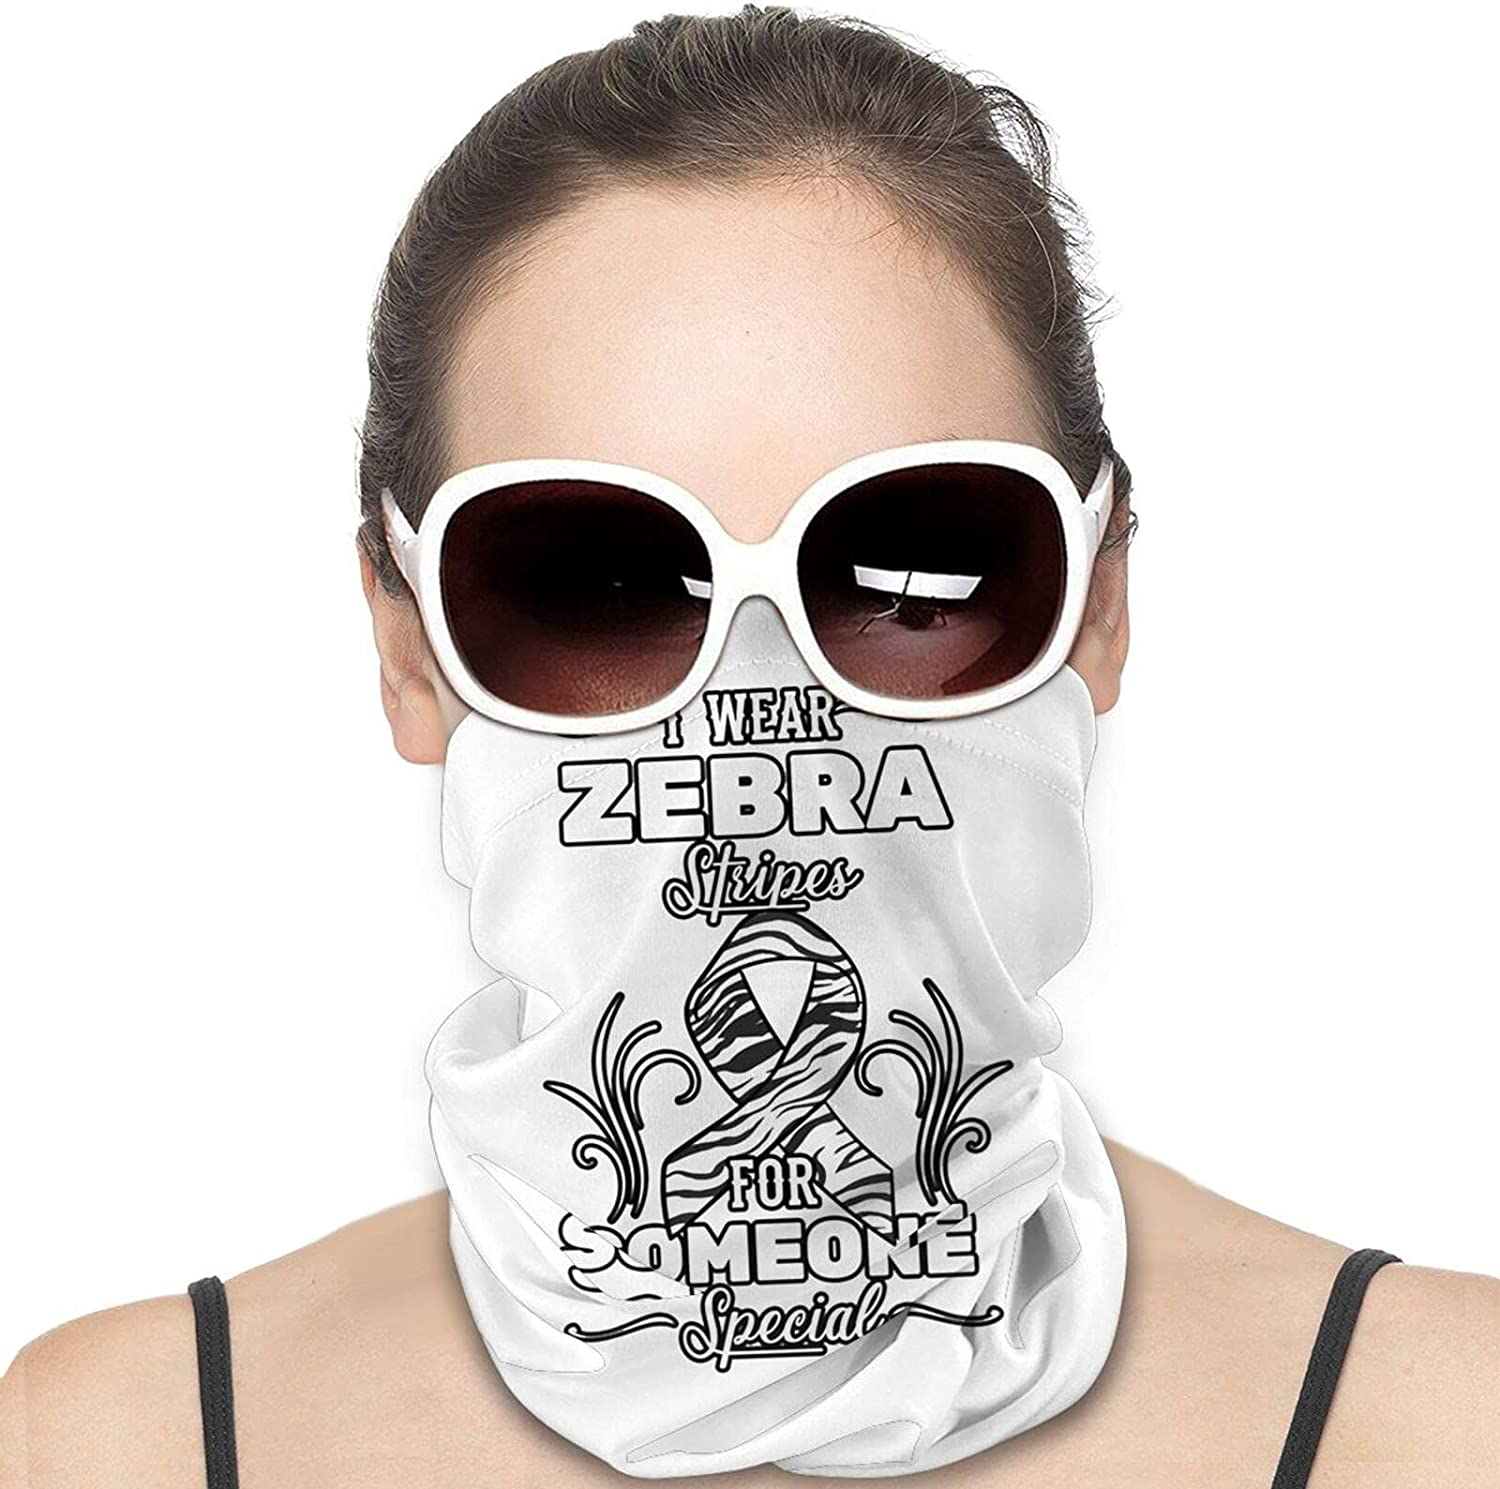 I Wear Zebra Stripe For Someone Special Round Neck Gaiter Bandnas Face Cover Uv Protection Prevent bask in Ice Scarf Headbands Perfect for Motorcycle Cycling Running Festival Raves Outdoors